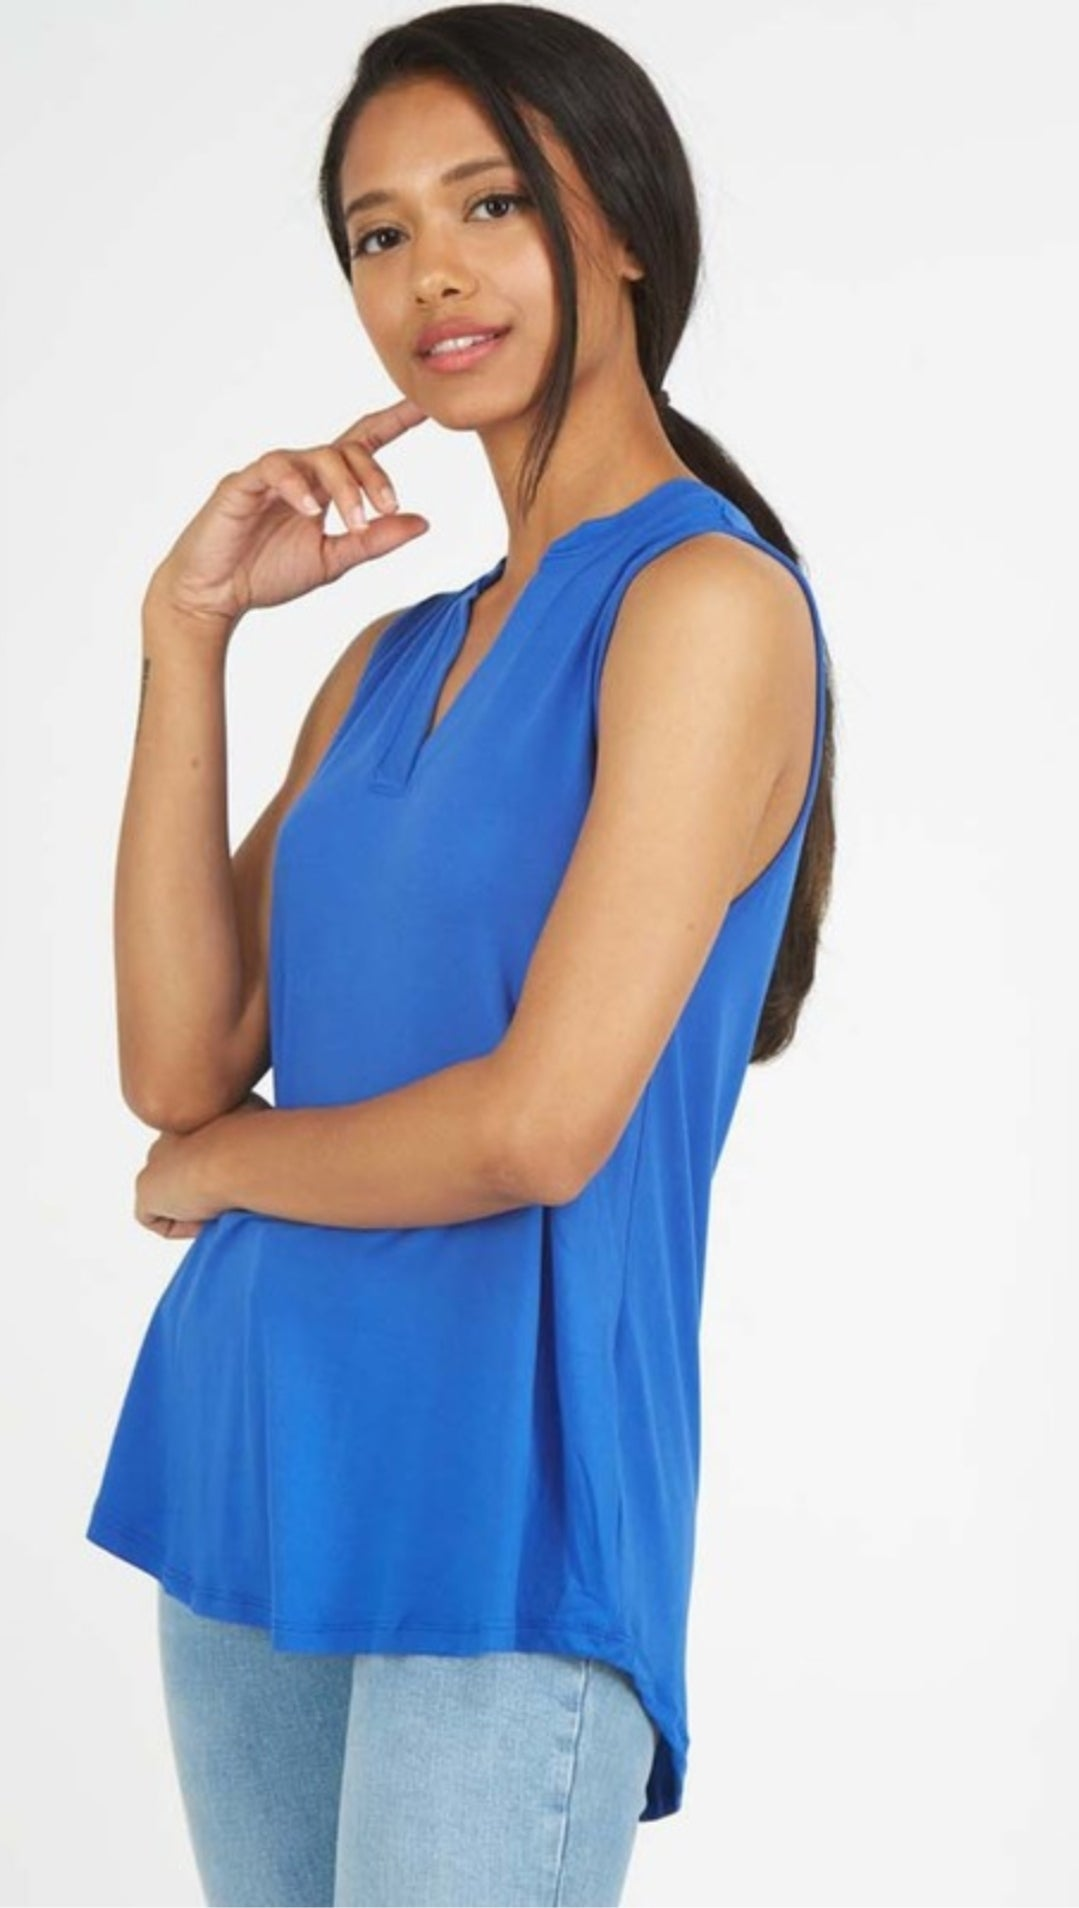 Placet Neck Sleeveless Top in Royal Blue